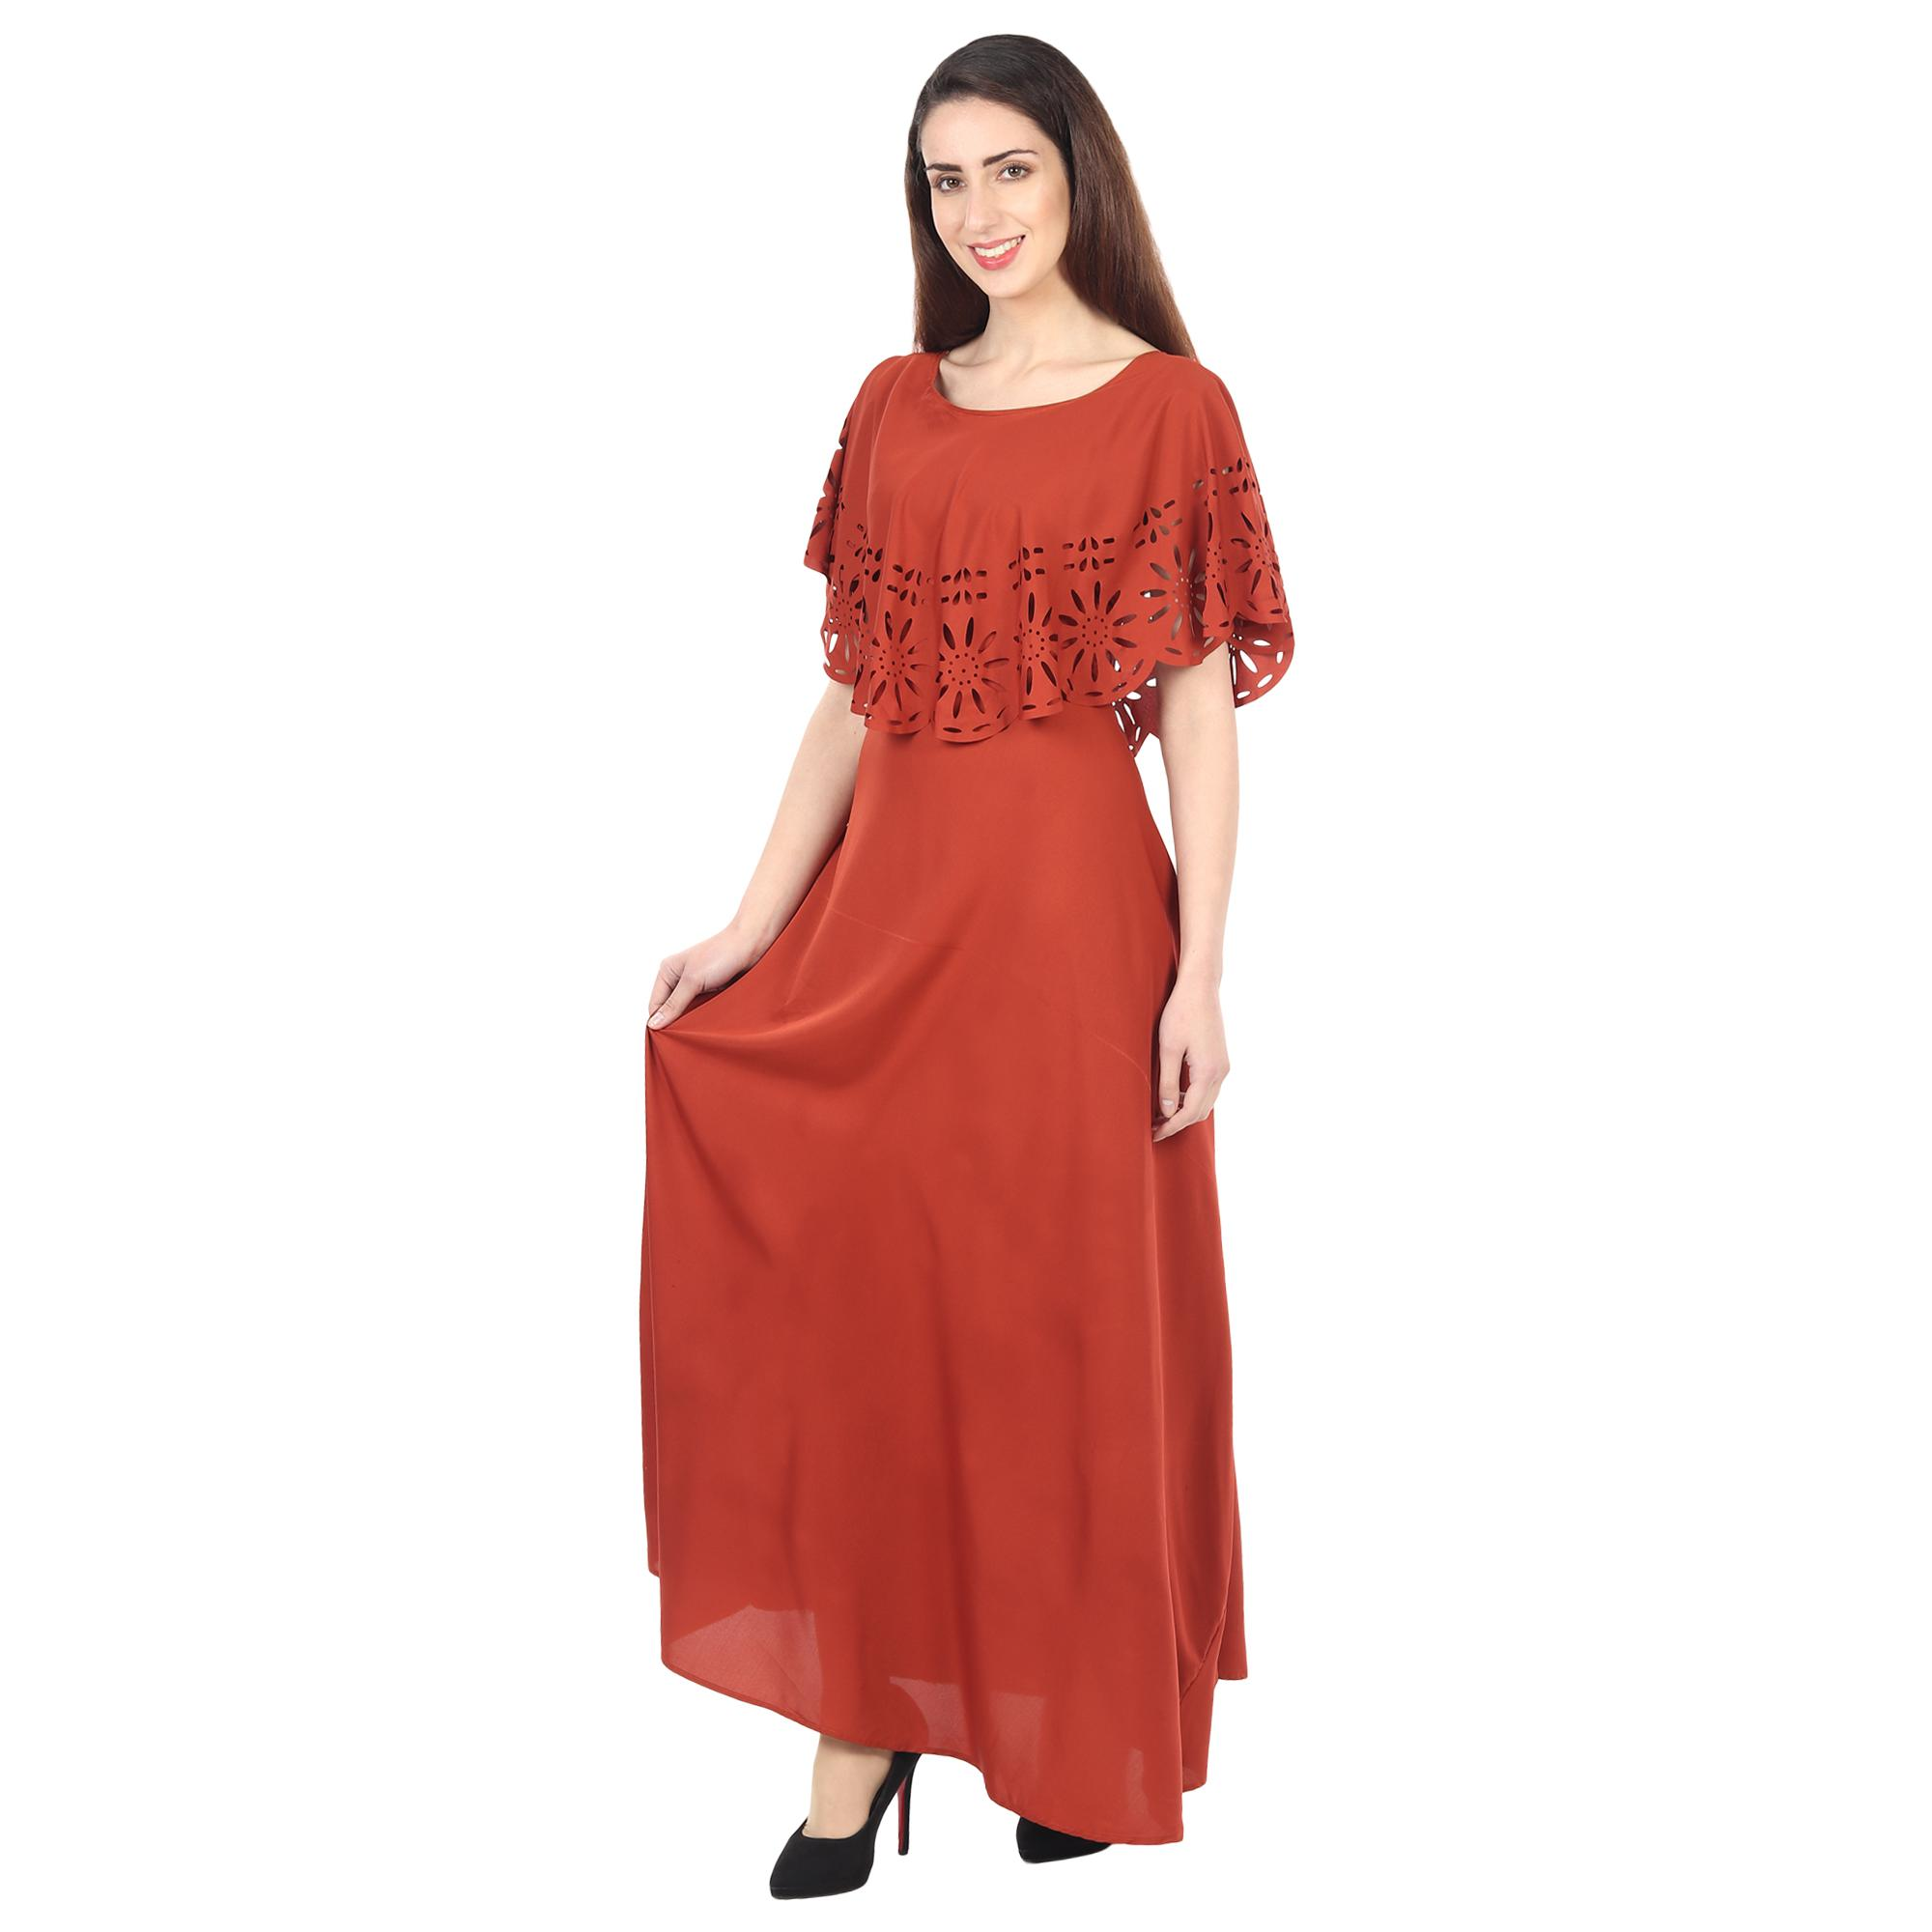 OMADAM - Maroon Colored Casual Wear Floral Crepe Cape Gown